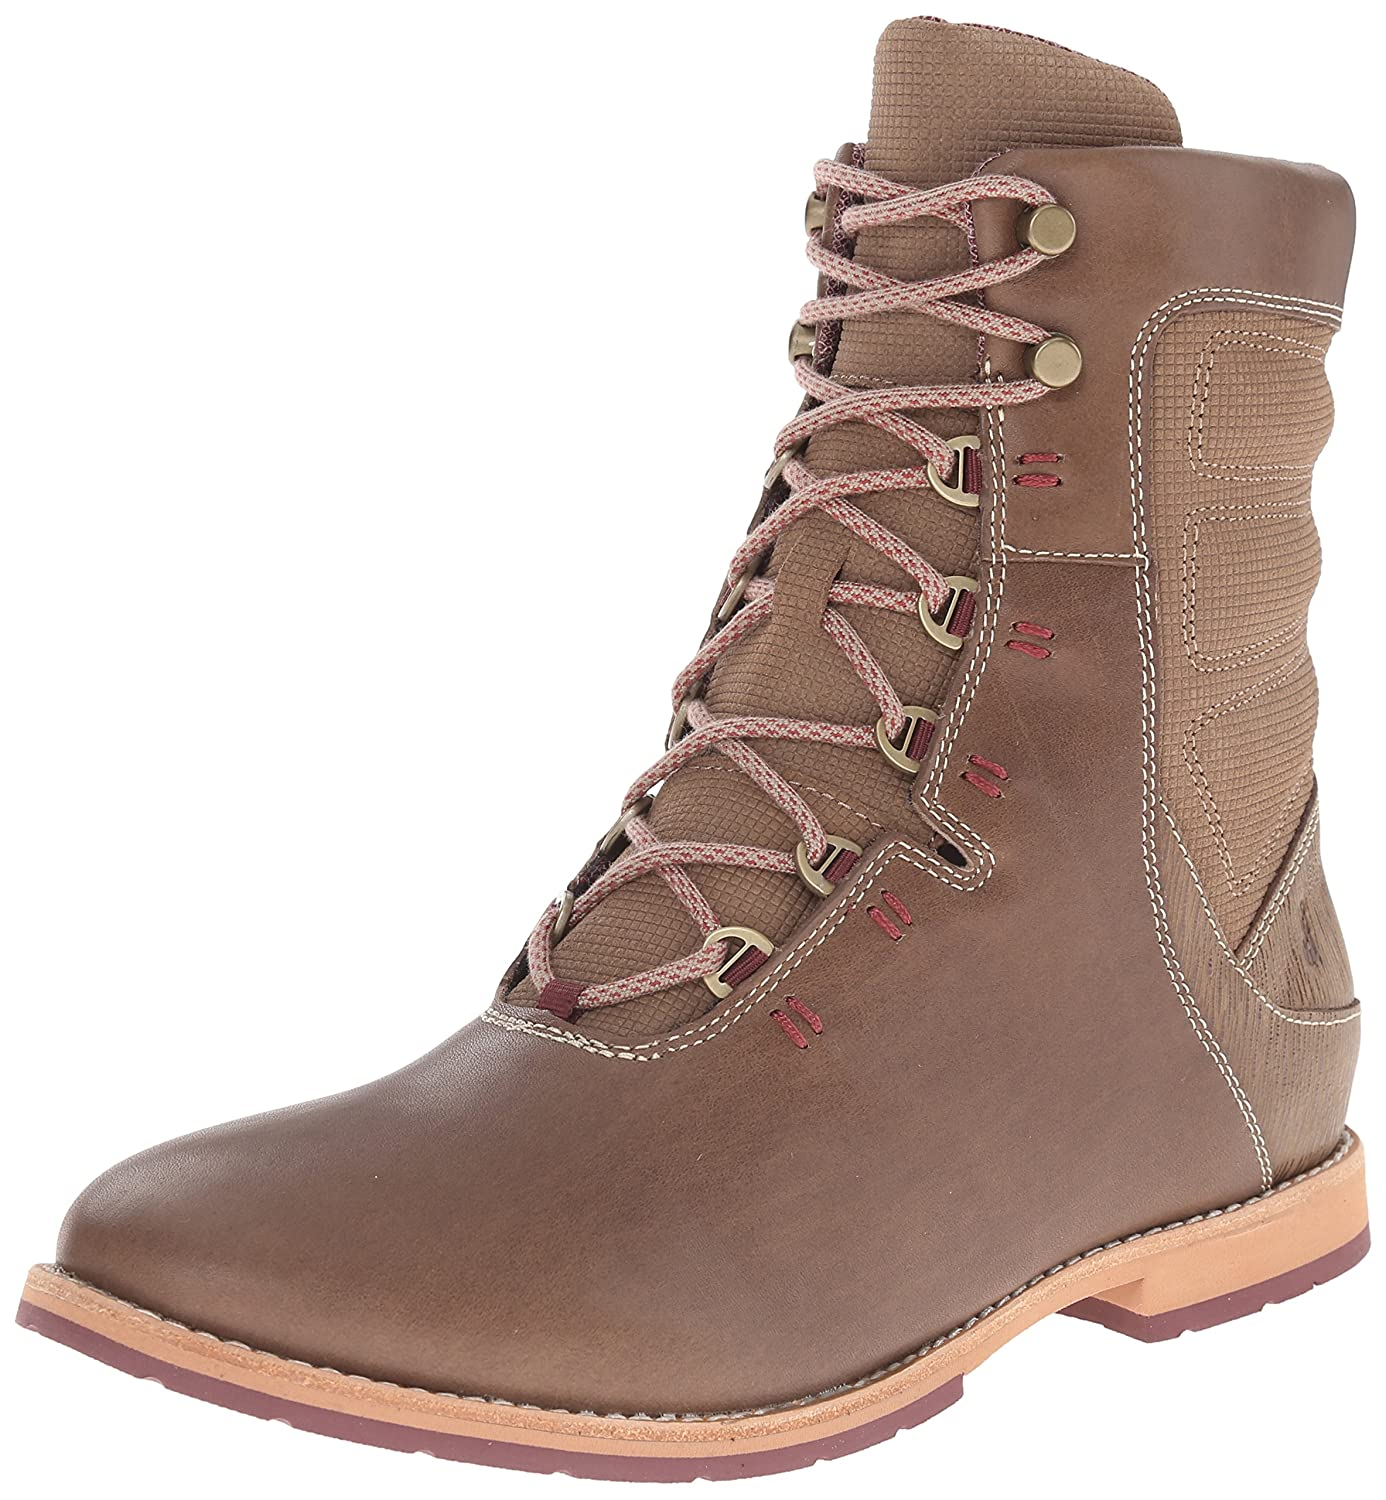 Ahnu Women's Chenery Lace up Boot B00RMKXRJM 10 B(M) US|Timber Wolf